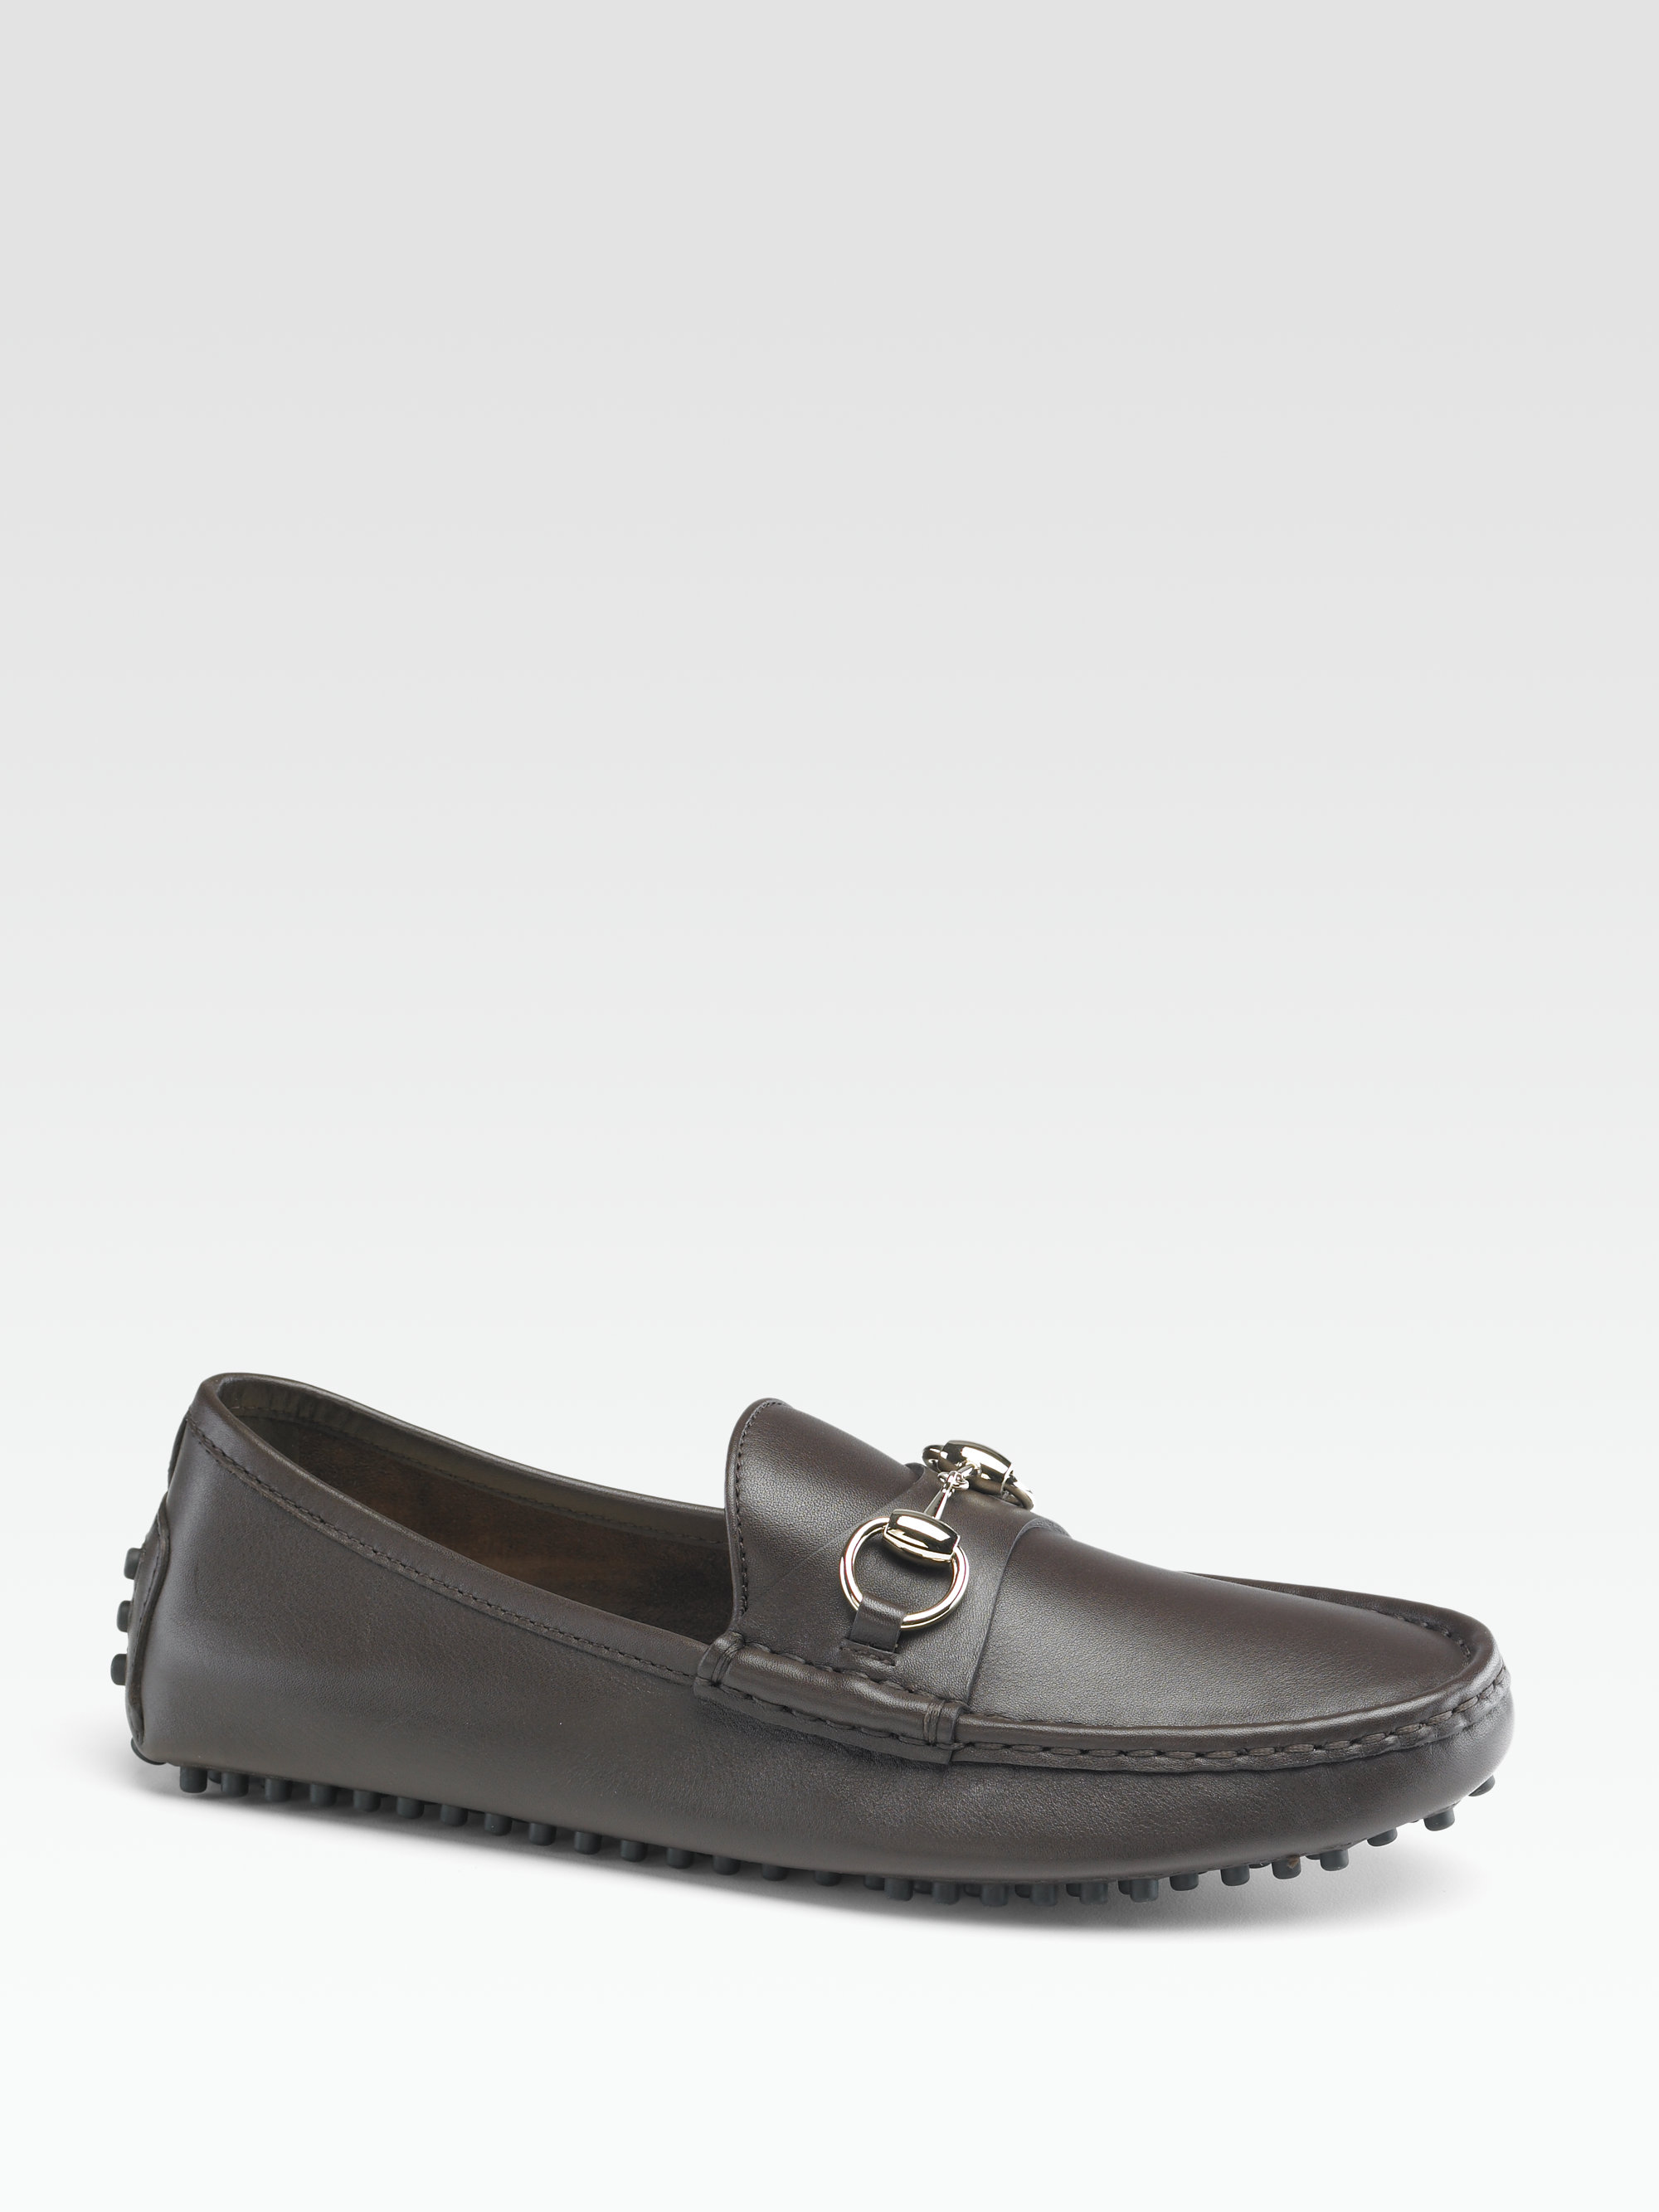 Gucci Damo Horsebit Loafers 28 Images 76 Gucci Shoes